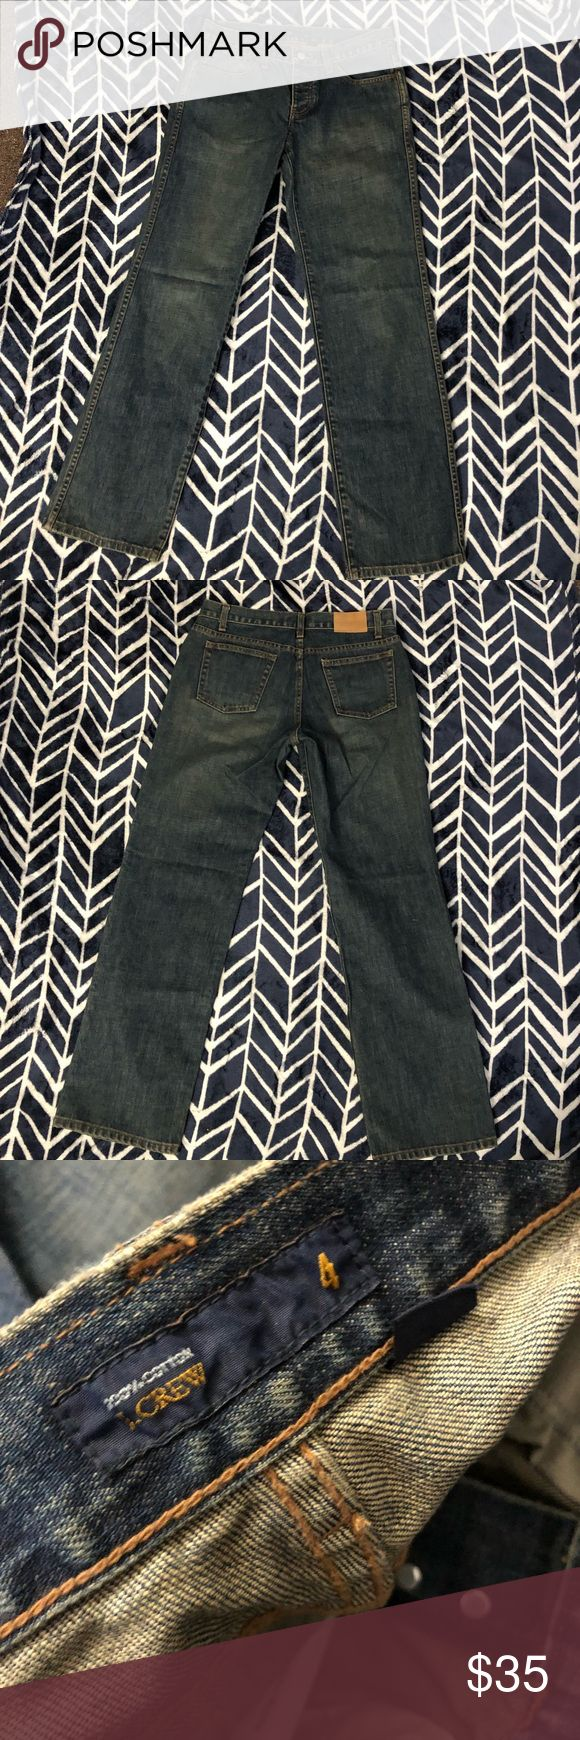 "J. Crew button-fly Jeans Woman's size 4 j. Crew button-fly Jeans. Very light wear. Factory darkened with brown in places. To pilling, holes or stains. The waist measures 15 1/2"" flat across, the rise is 8 1/2"" and the inseam is 32"". J. Crew Jeans"